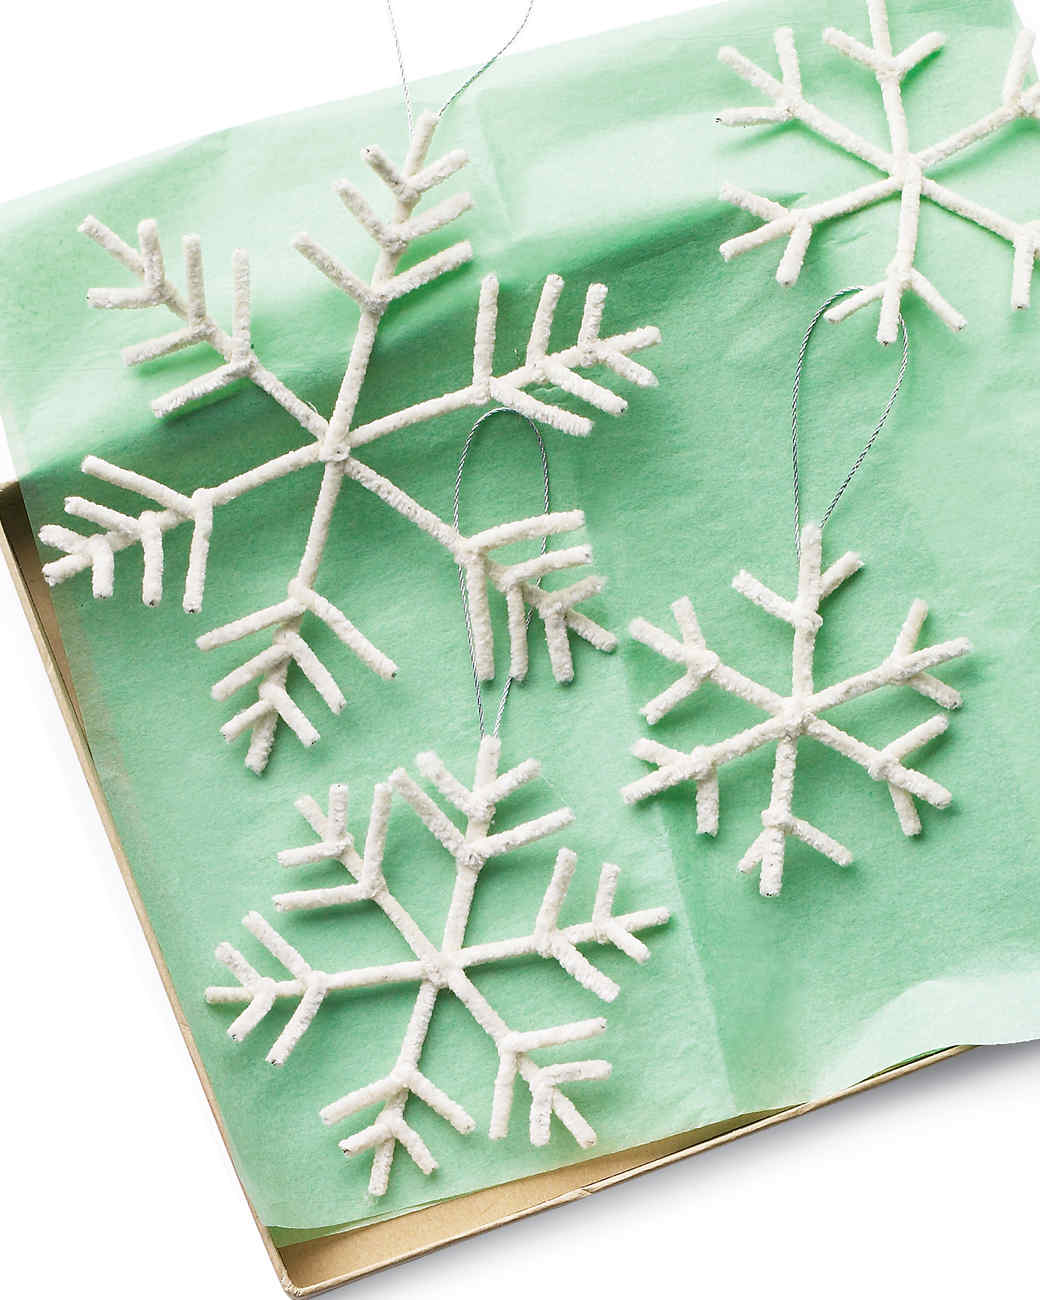 Snowflake ornaments crafts - Snowflake Ornaments Crafts 31